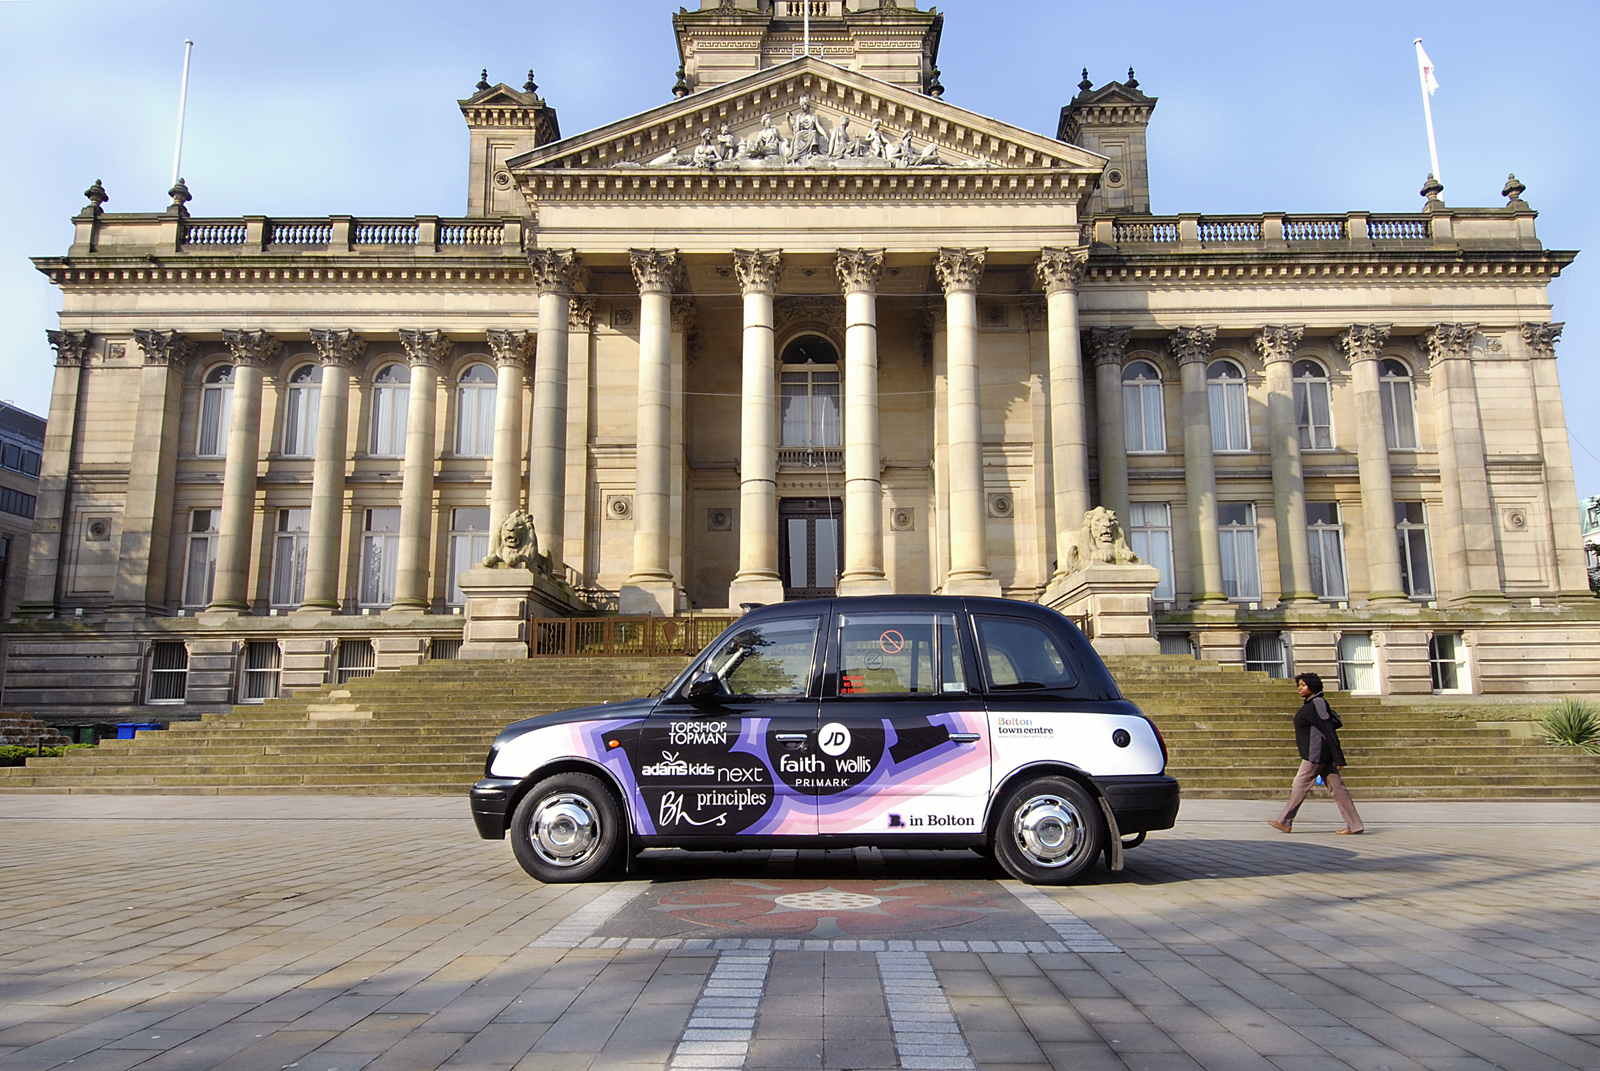 2008 Ubiquitous taxi advertising campaign for Bolton Council - In Bolton